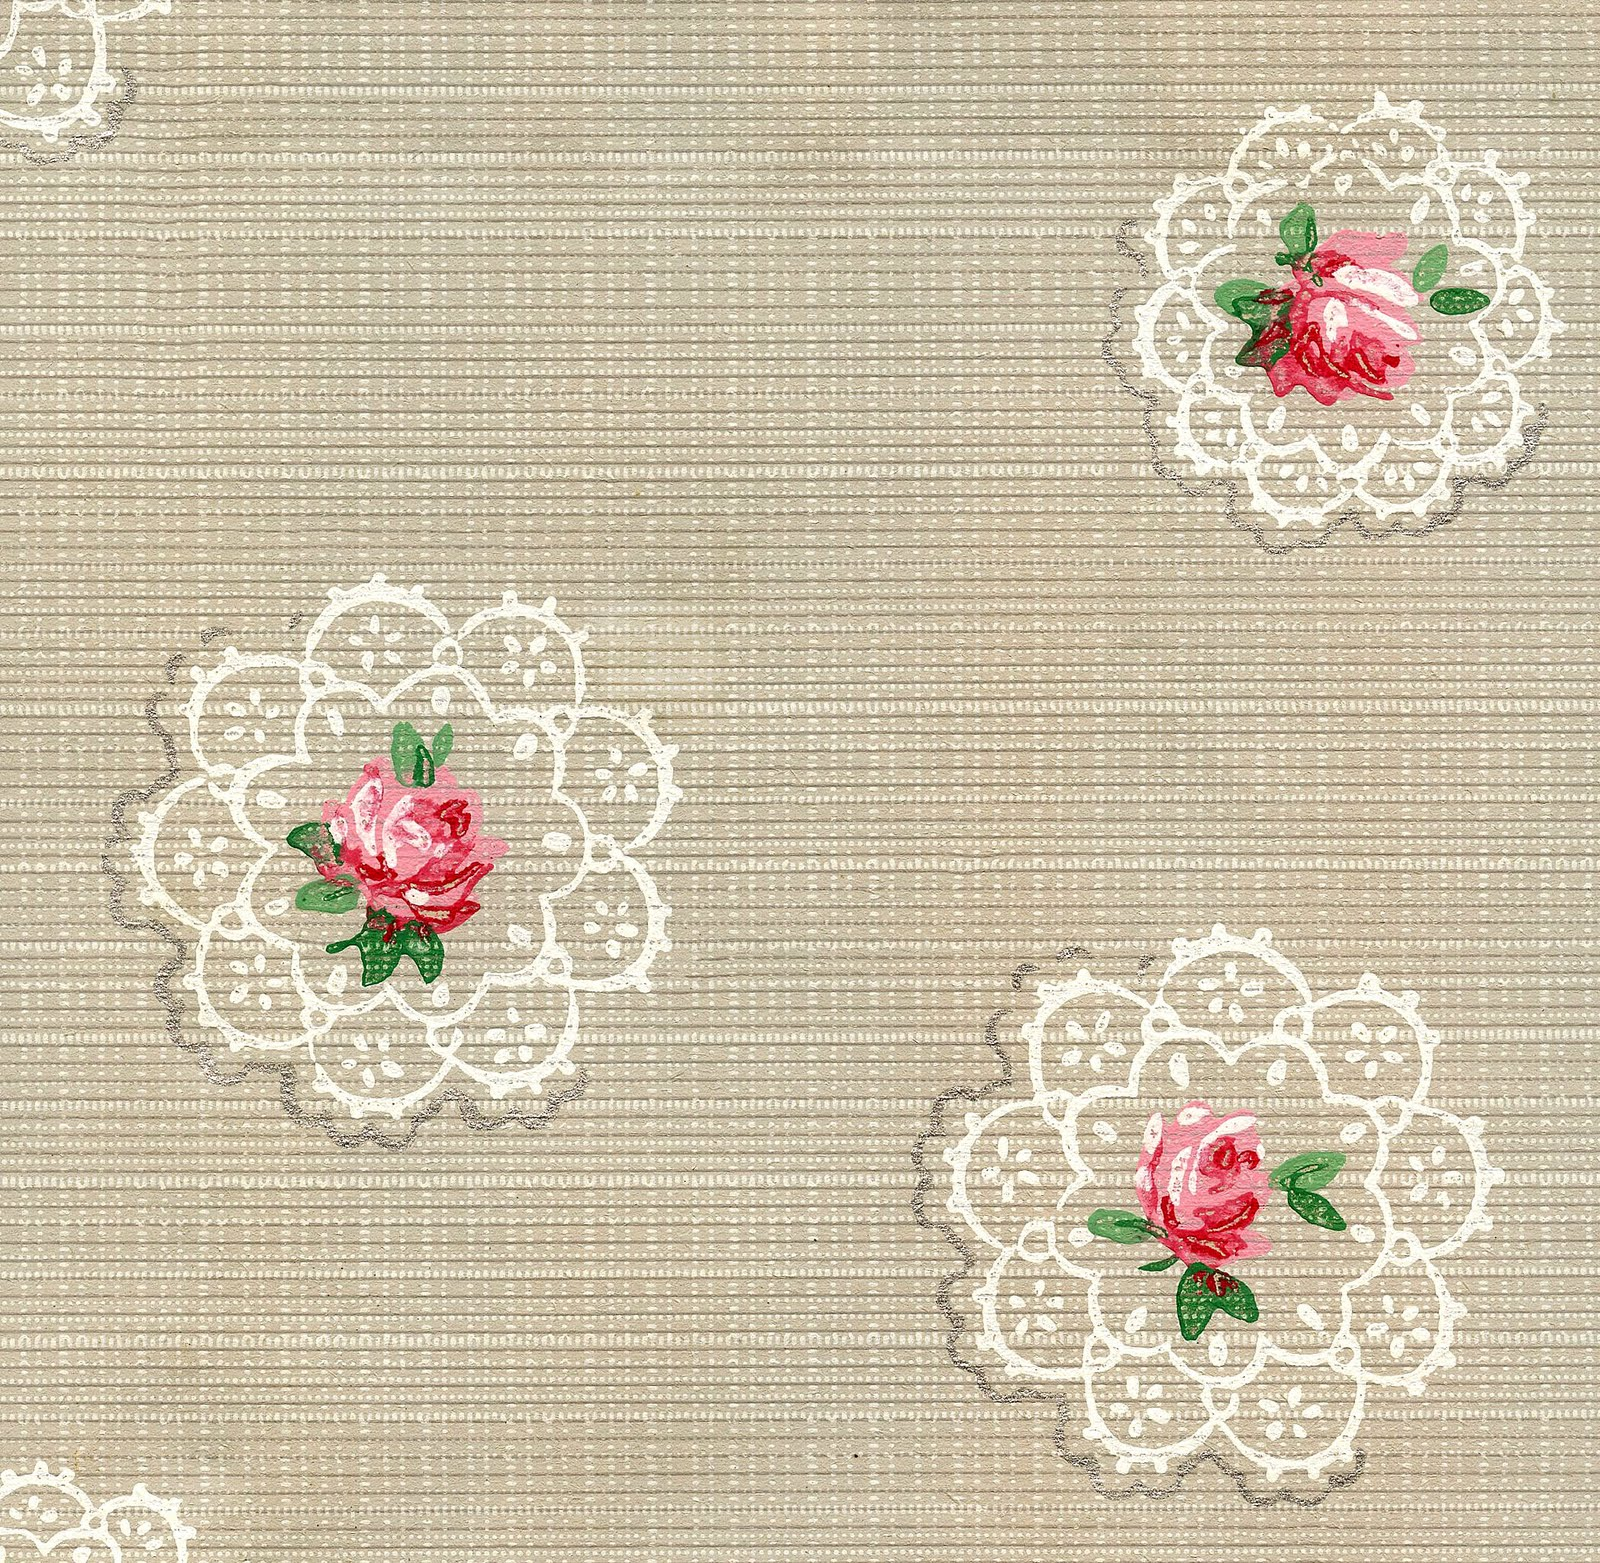 The Graphics Fairy - Random Doilies and Roses Vintage Wallpaper